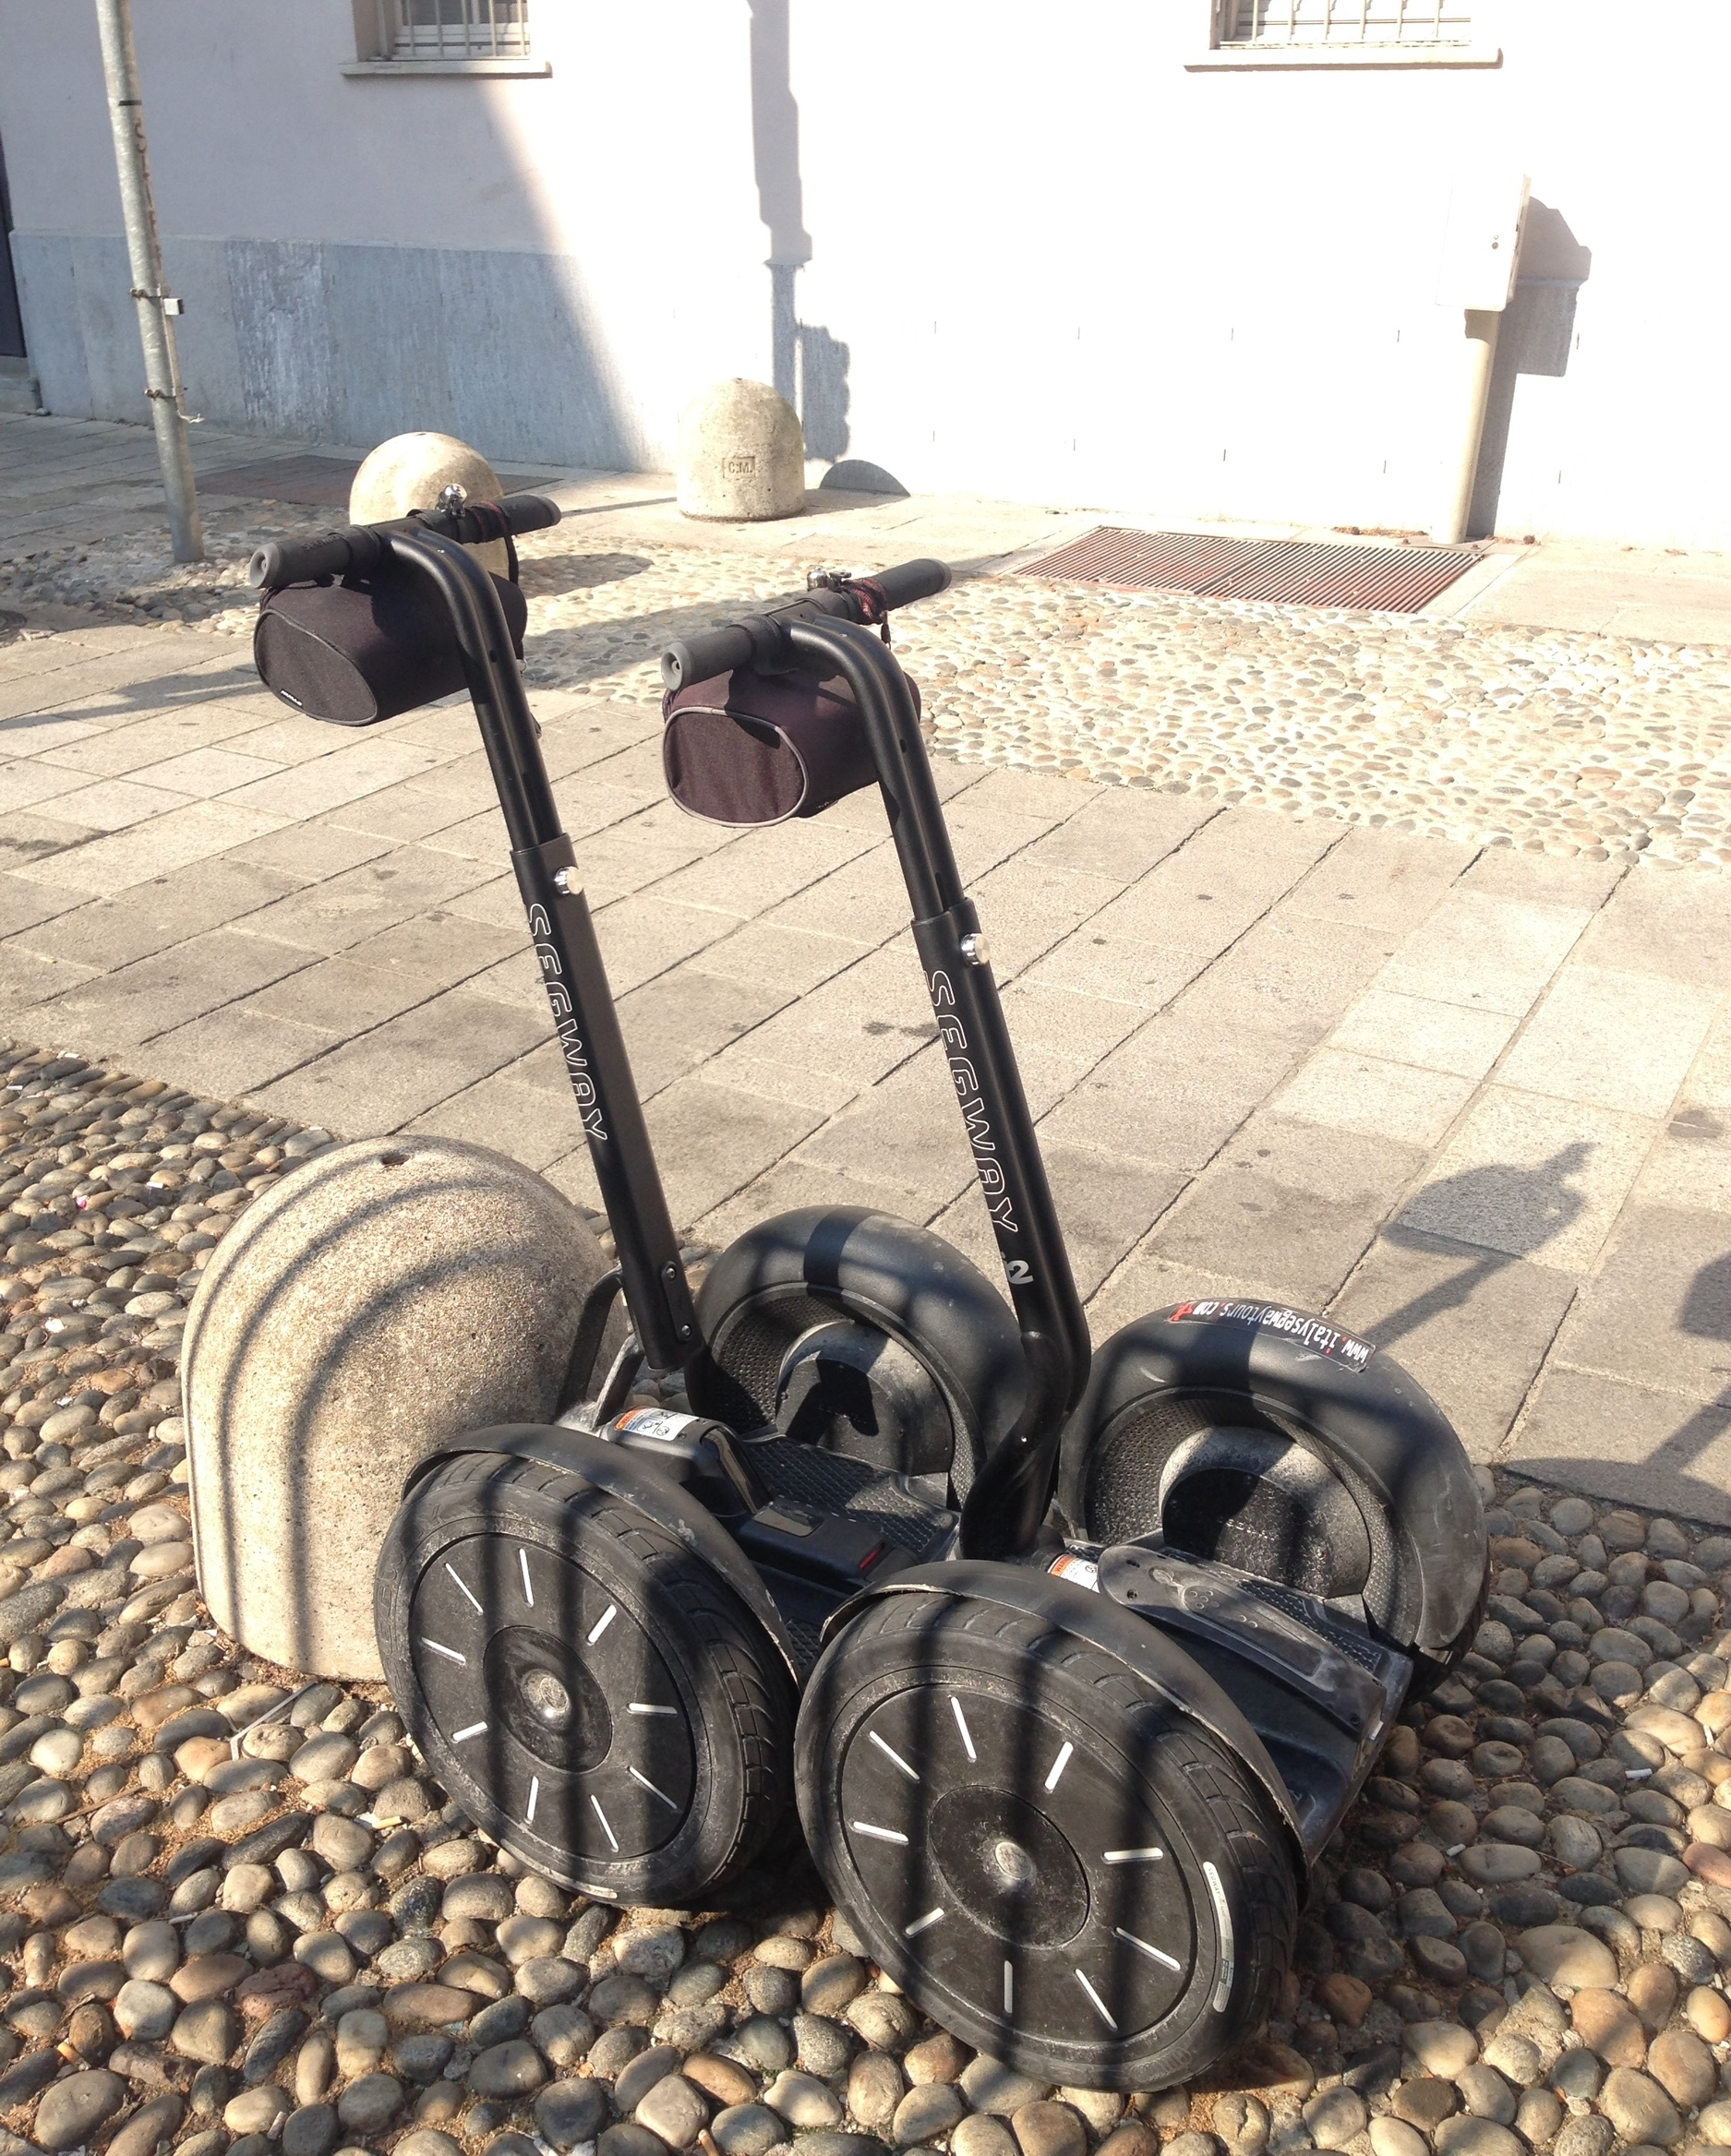 How to ride a segway